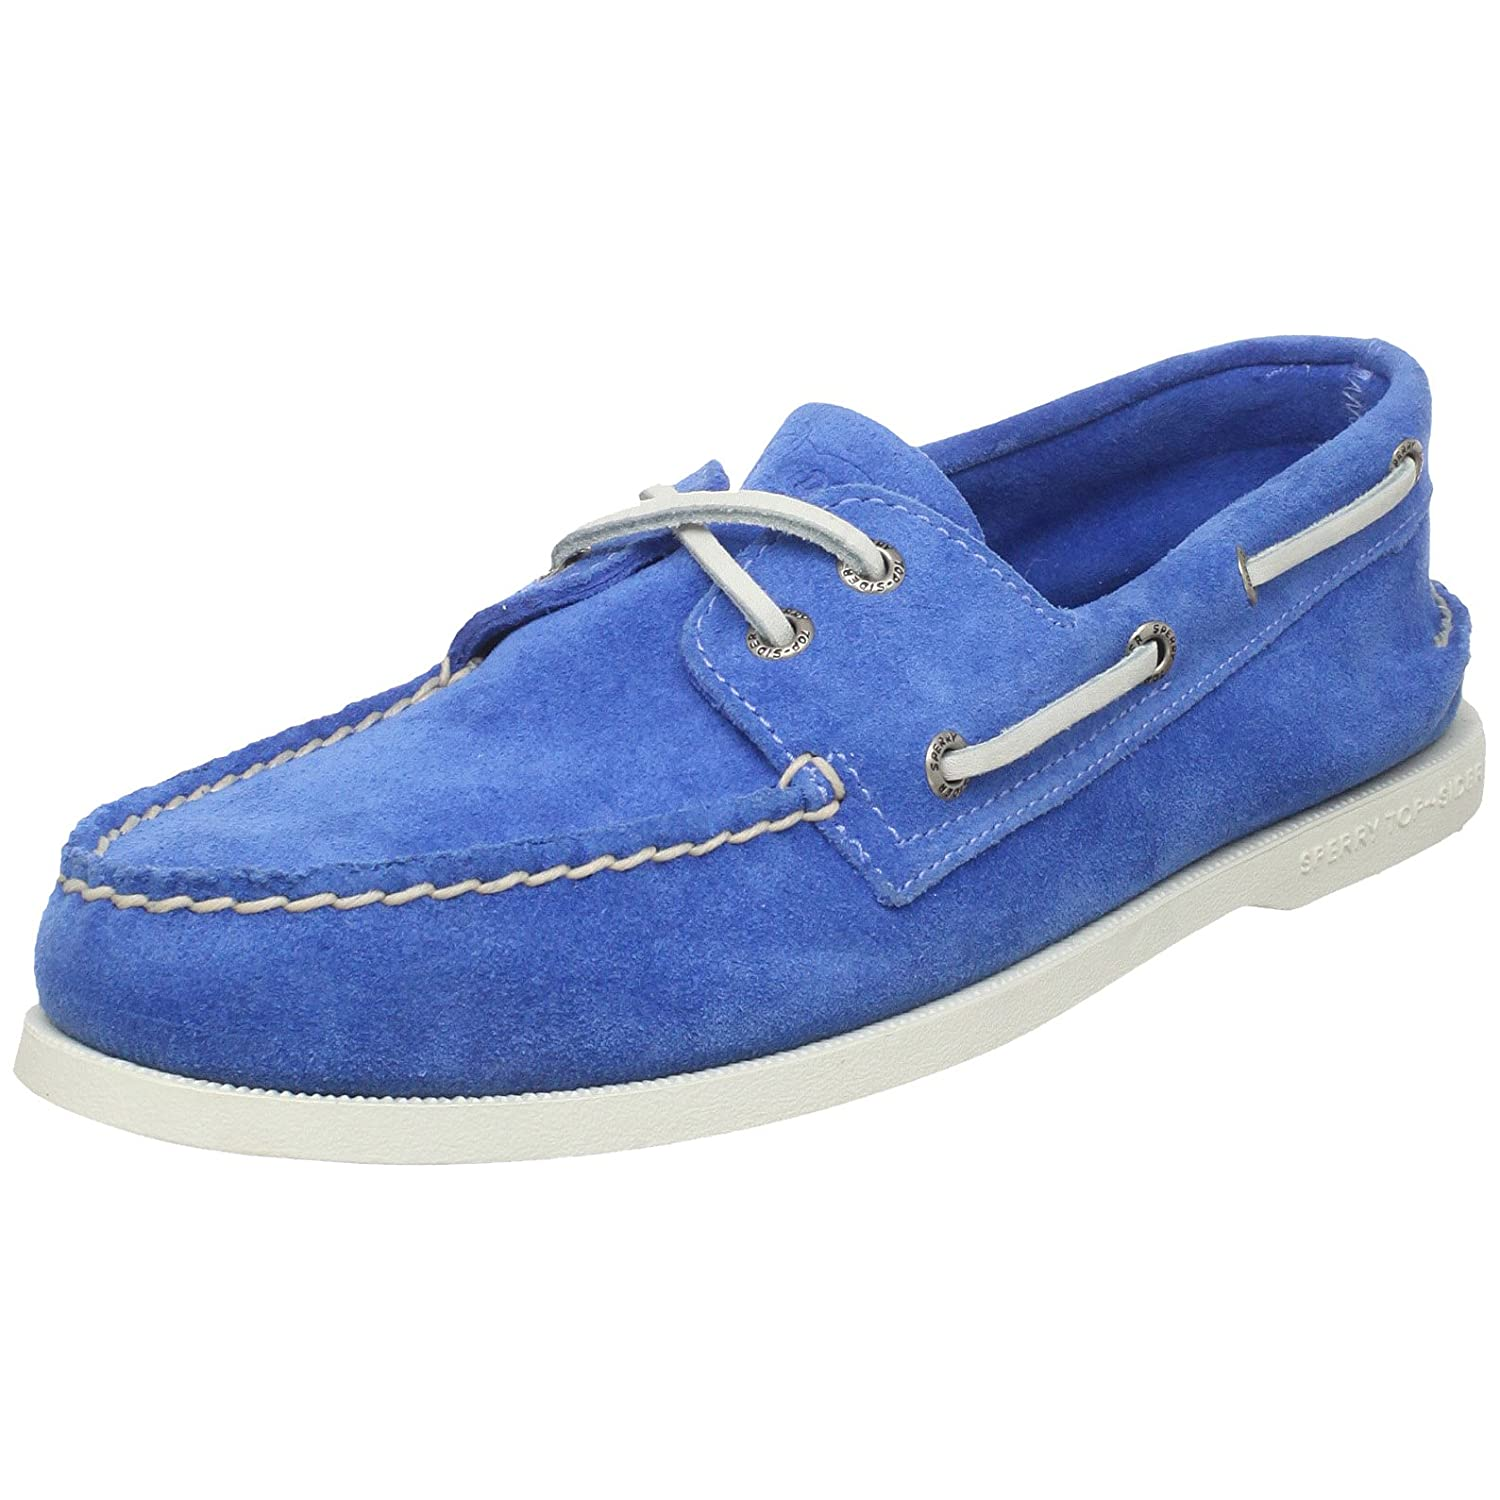 Sperry Top-Sider Authentic Originals Mens Boat Shoes